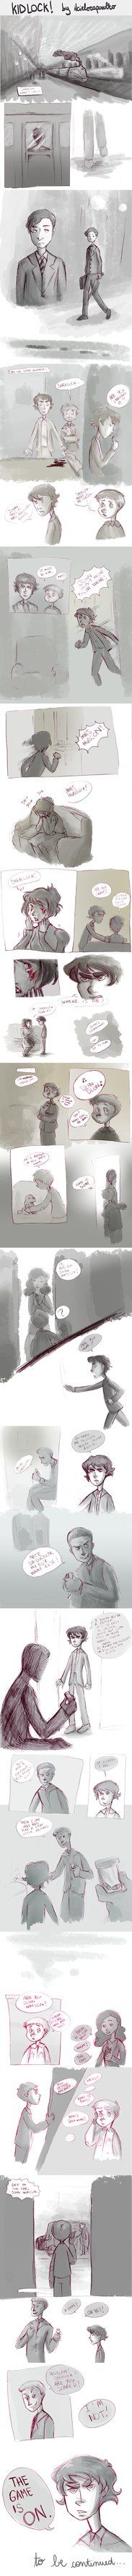 Kidlock. (the game is on) by ilcielocapovolto on deviantART